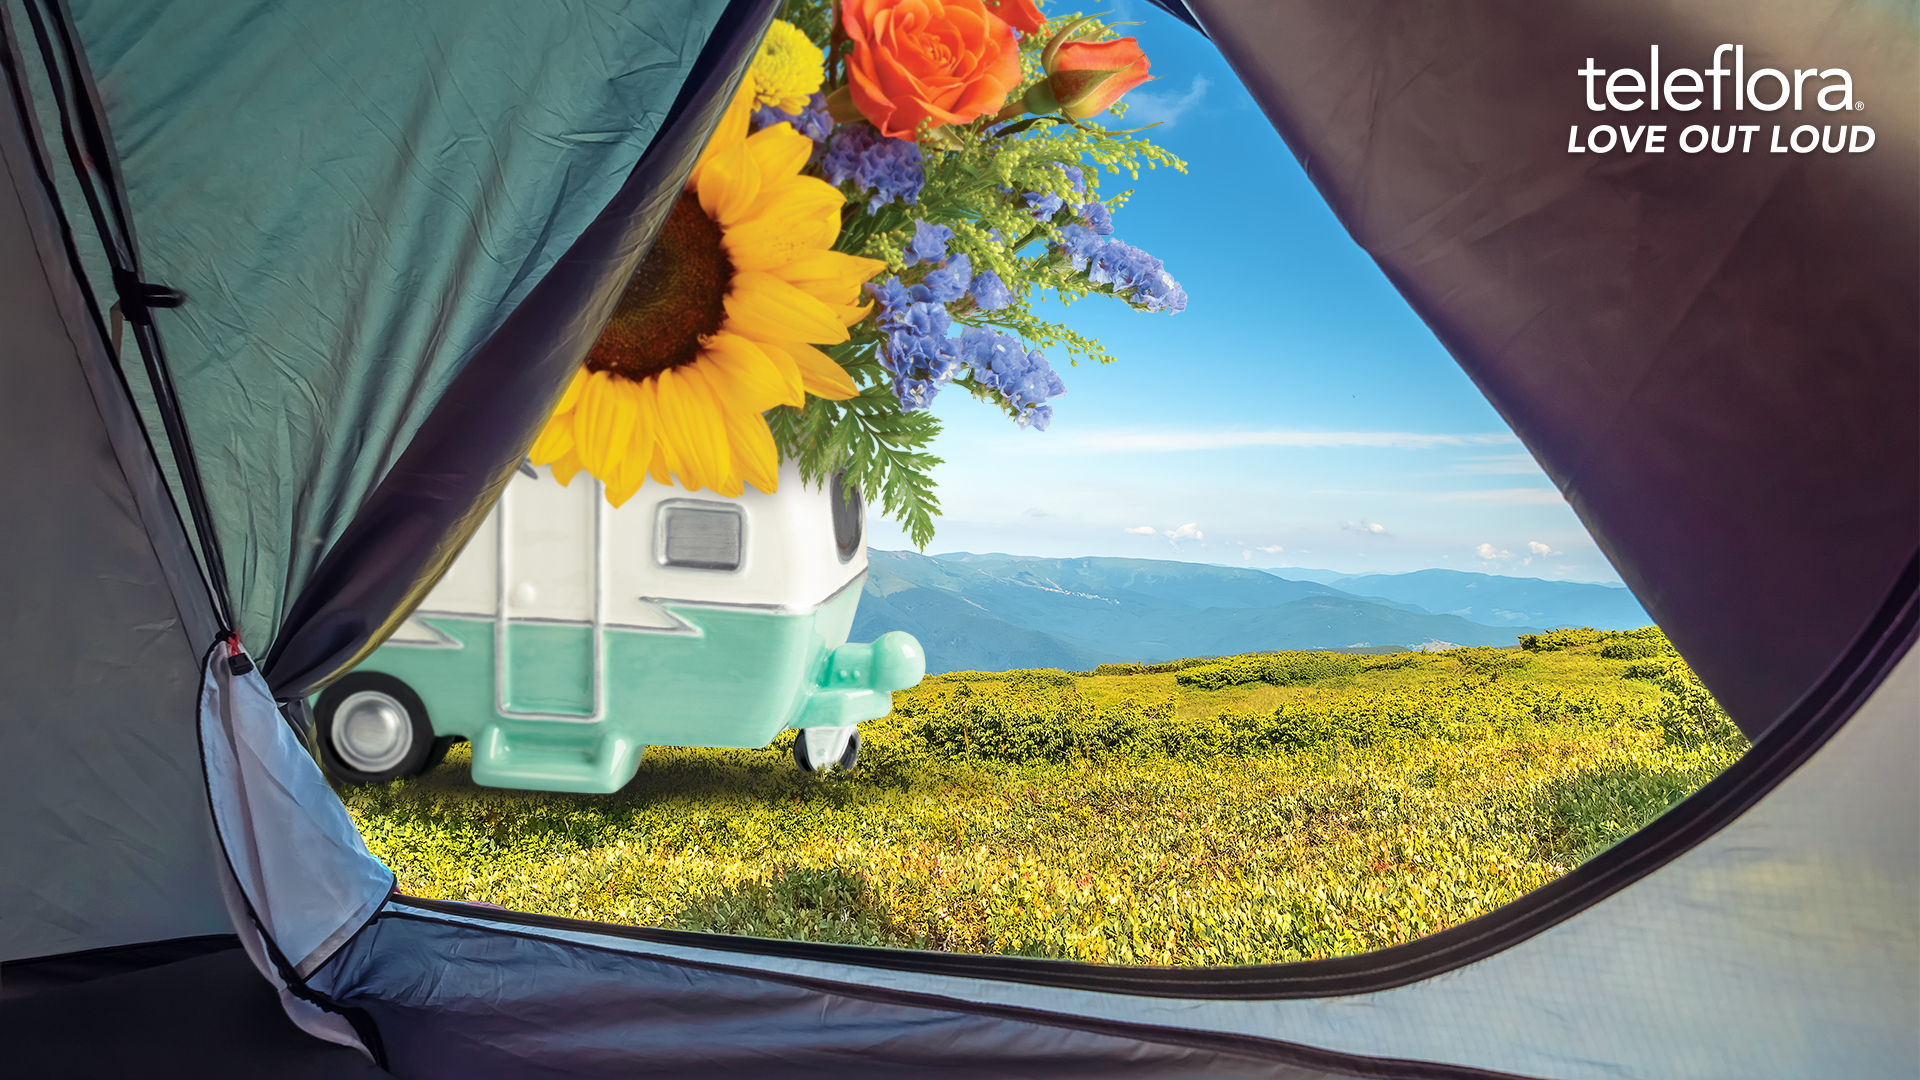 view from a tent to a camper and flowers